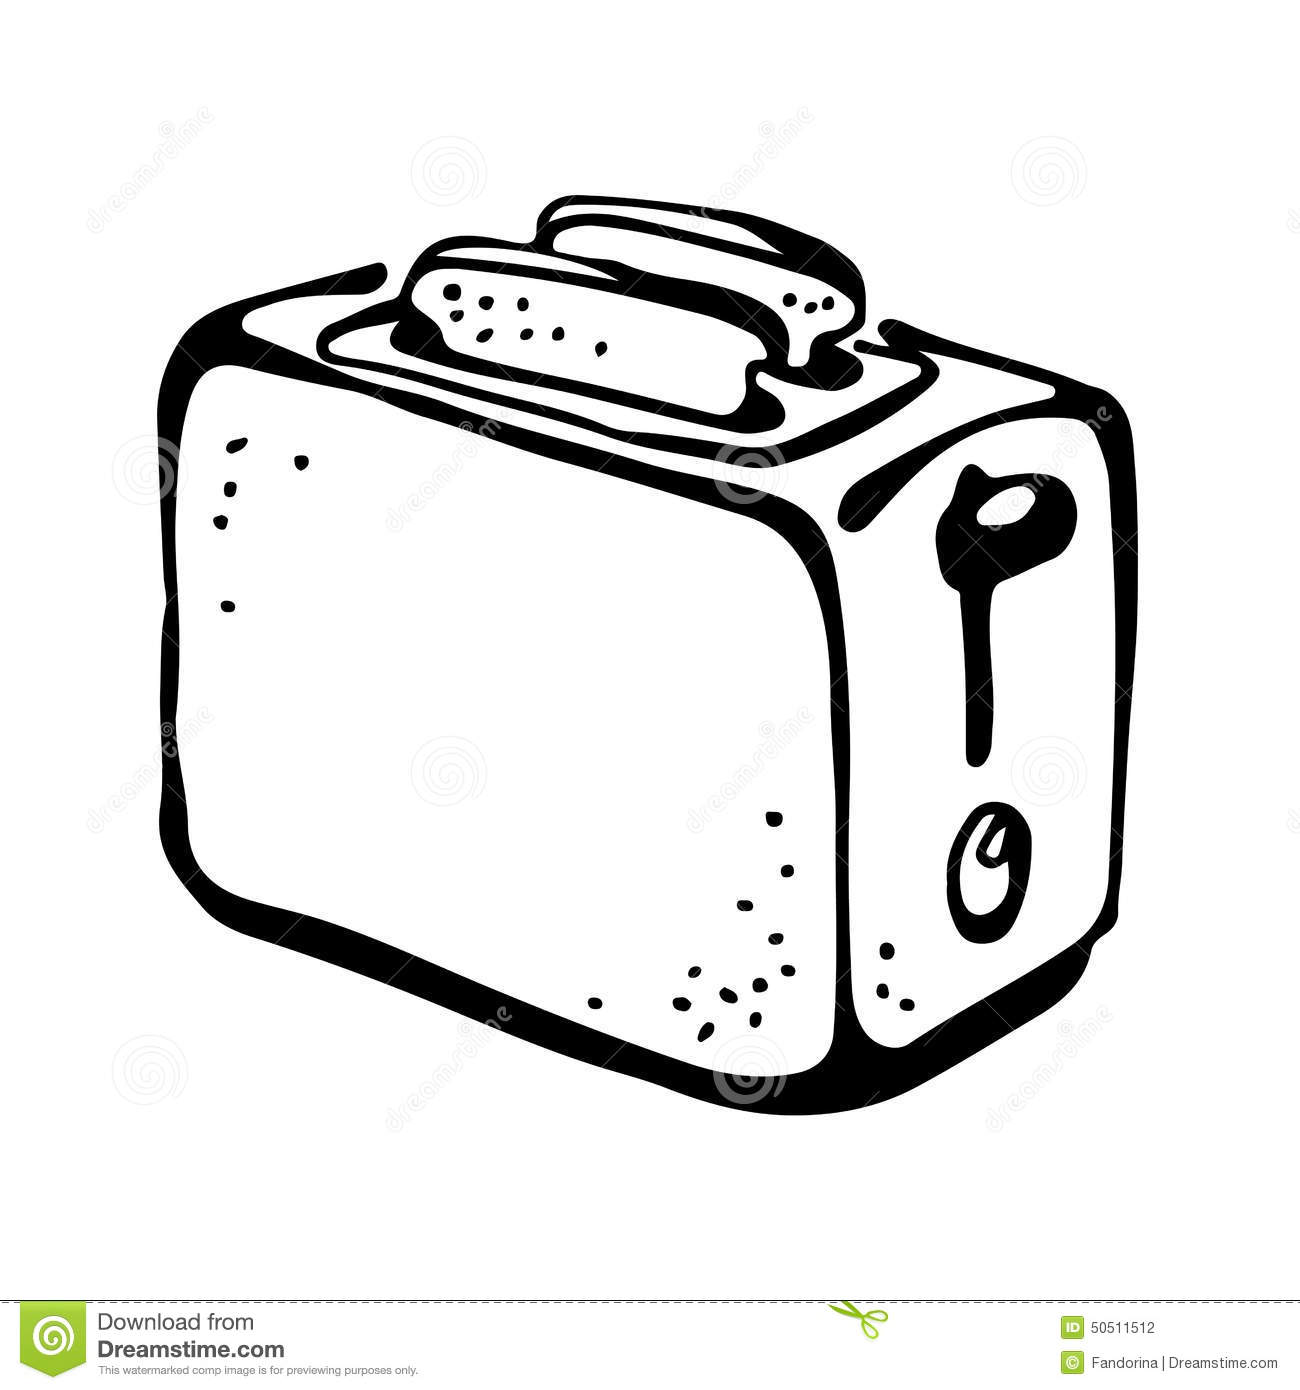 Stock Illustration Toaster Drawing Isolated White Background Image50511512 on Cartoon Breakfast